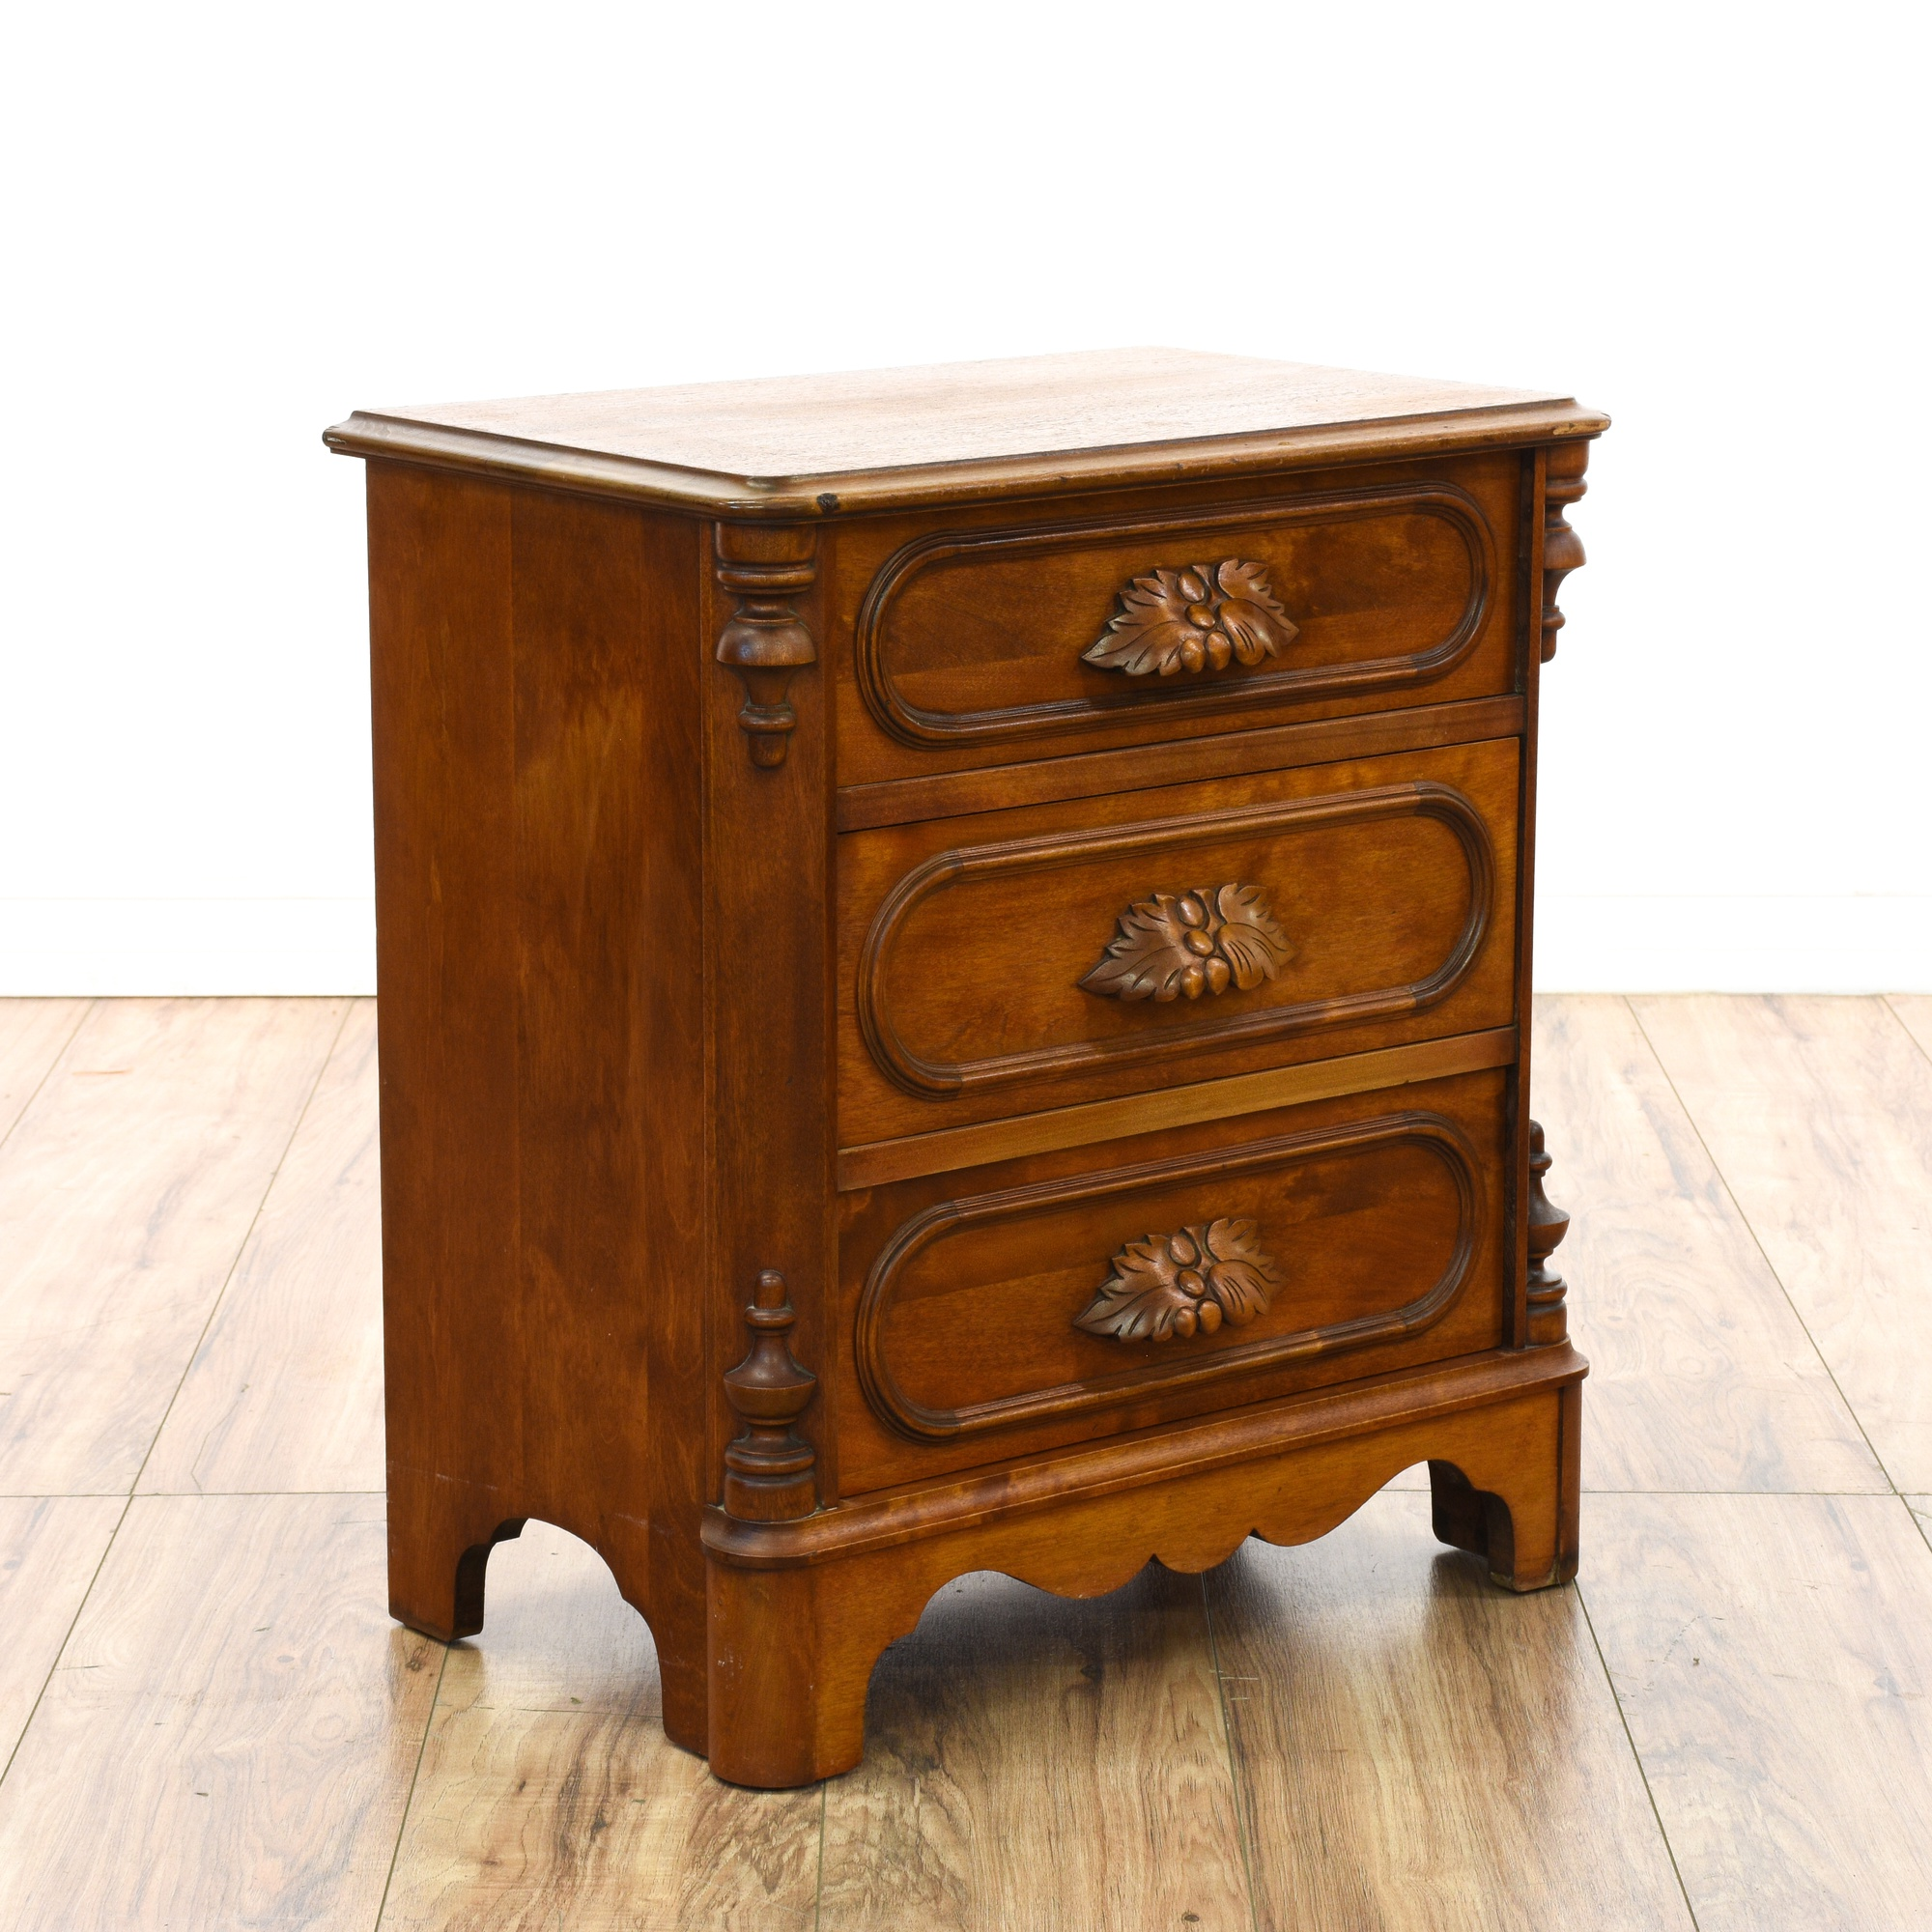 Antique Wooden Carved 3 Drawer Nightstand Loveseat Vintage Furniture San Diego Los Angeles